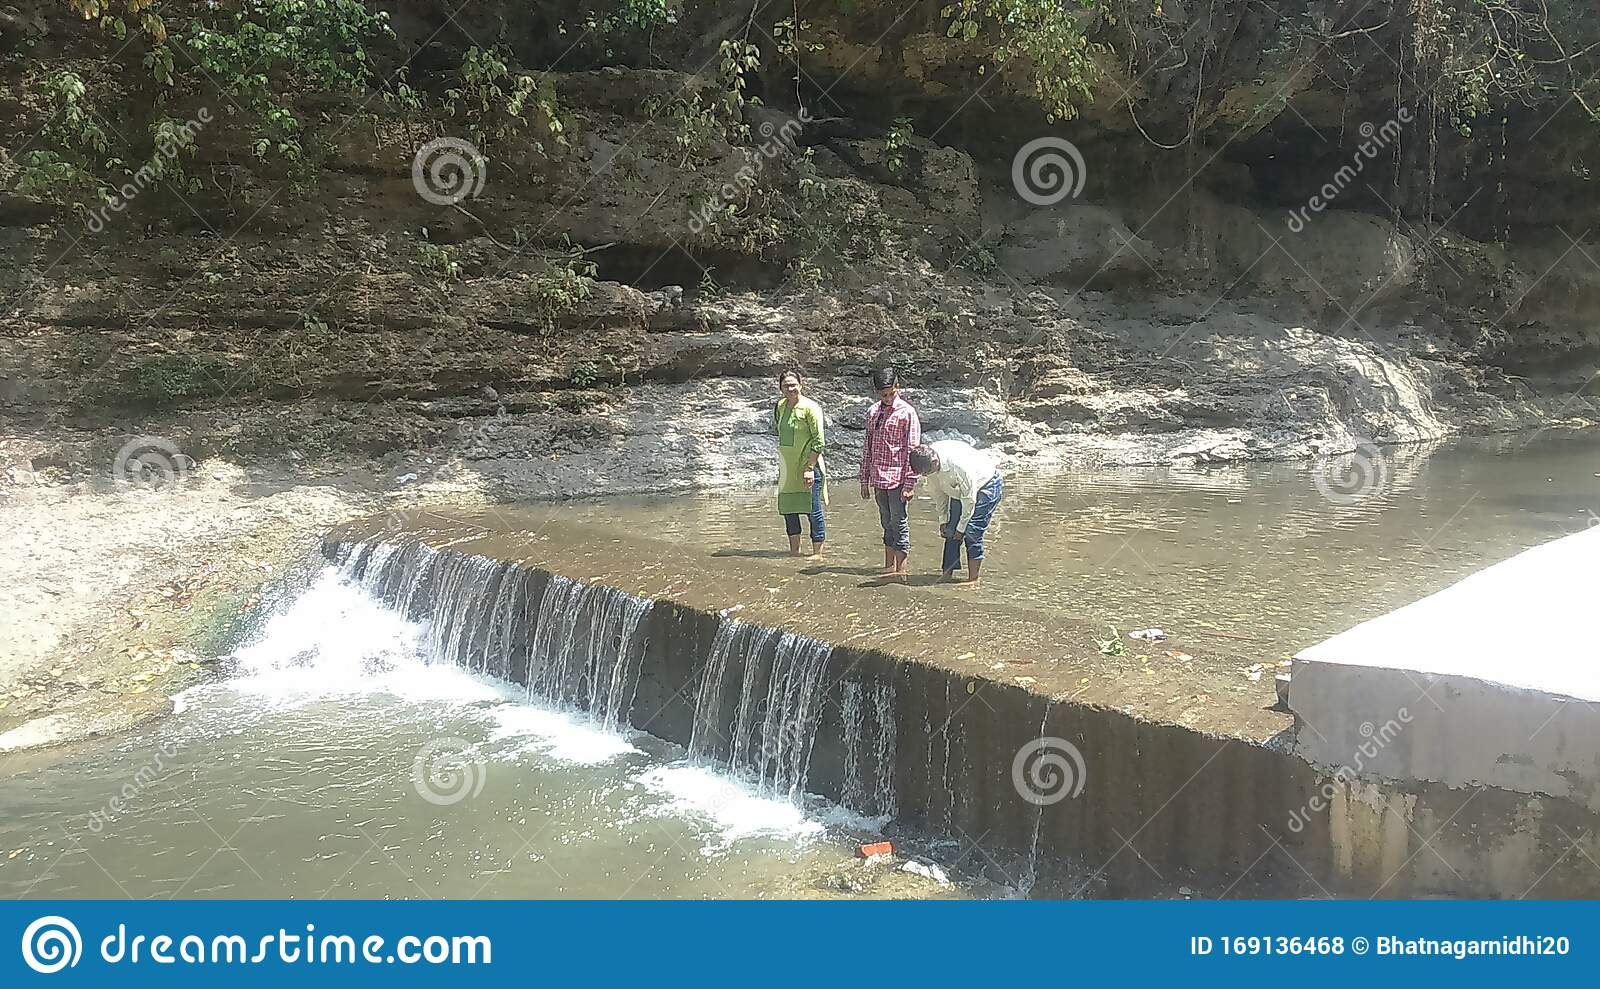 A Beautiful View Of Seasonal River In Dehradun Uttarakhand India Editorial Stock Photo Image Of View Water 169136468